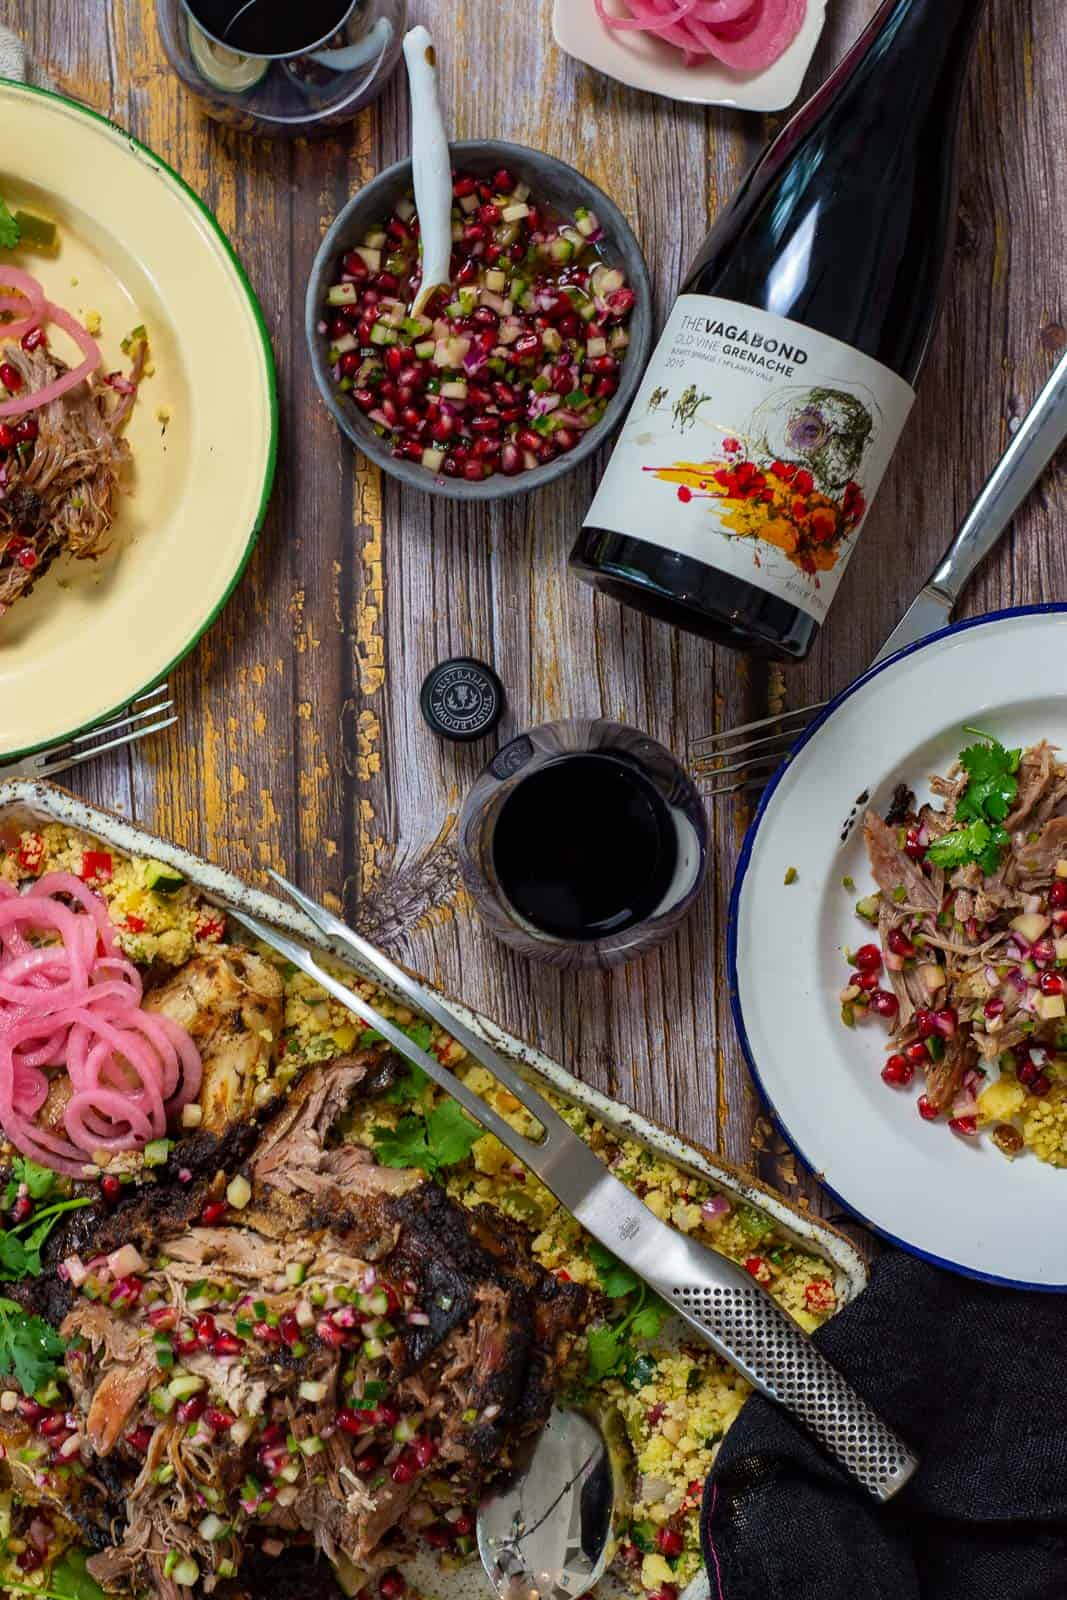 platter of slow cooked moroccan lamb, plates with food and bottle of thistledown vagabond grenache